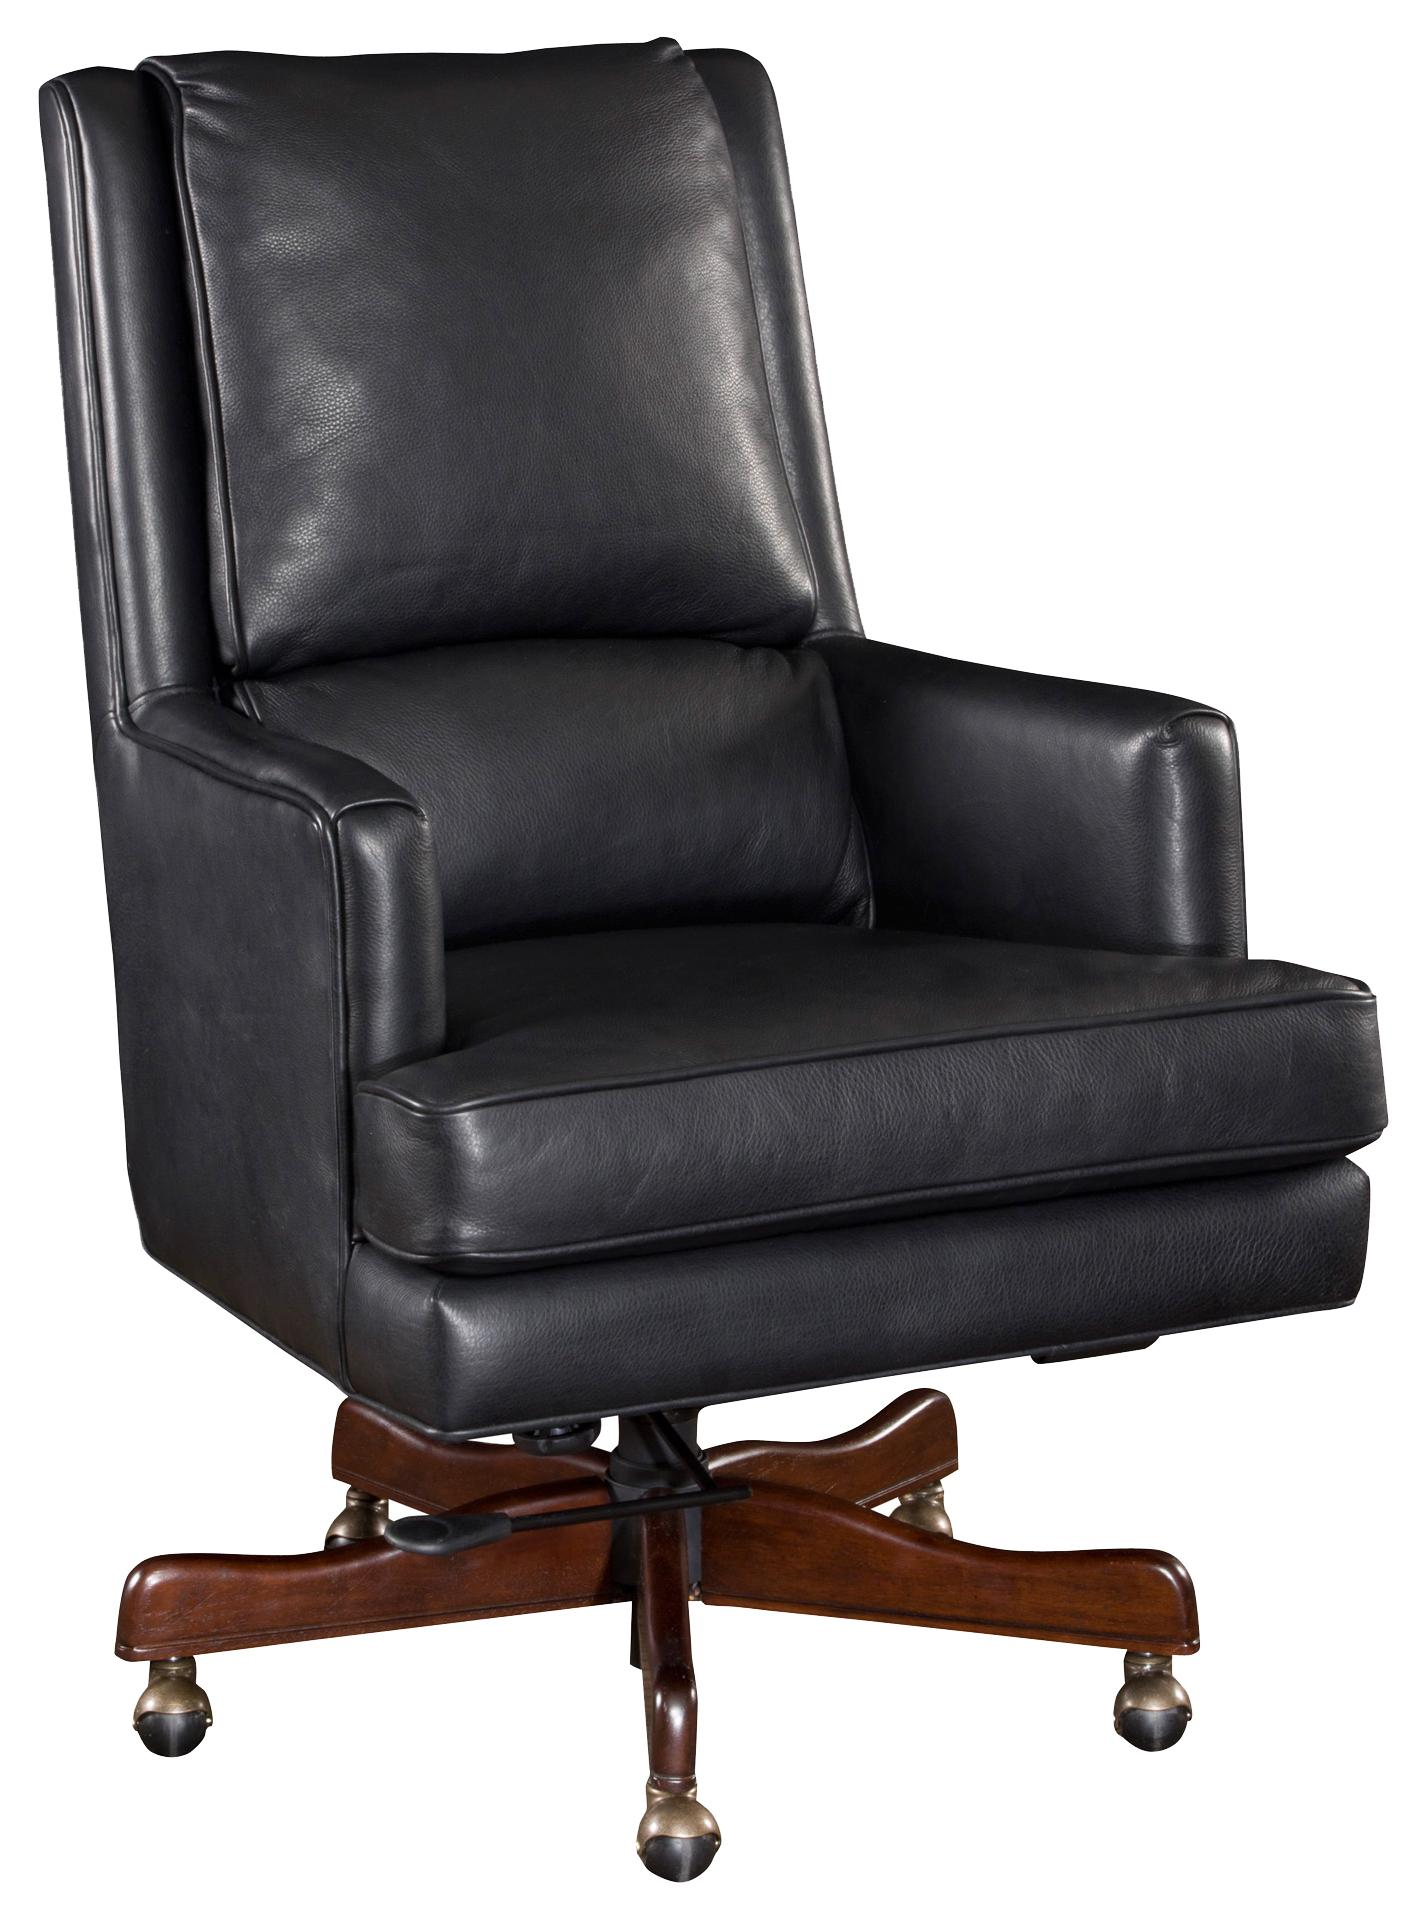 Executive Seating Upholstered Leather Desk Chair with Professional Style by  Hooker Furniture at Dunk & Bright Furniture